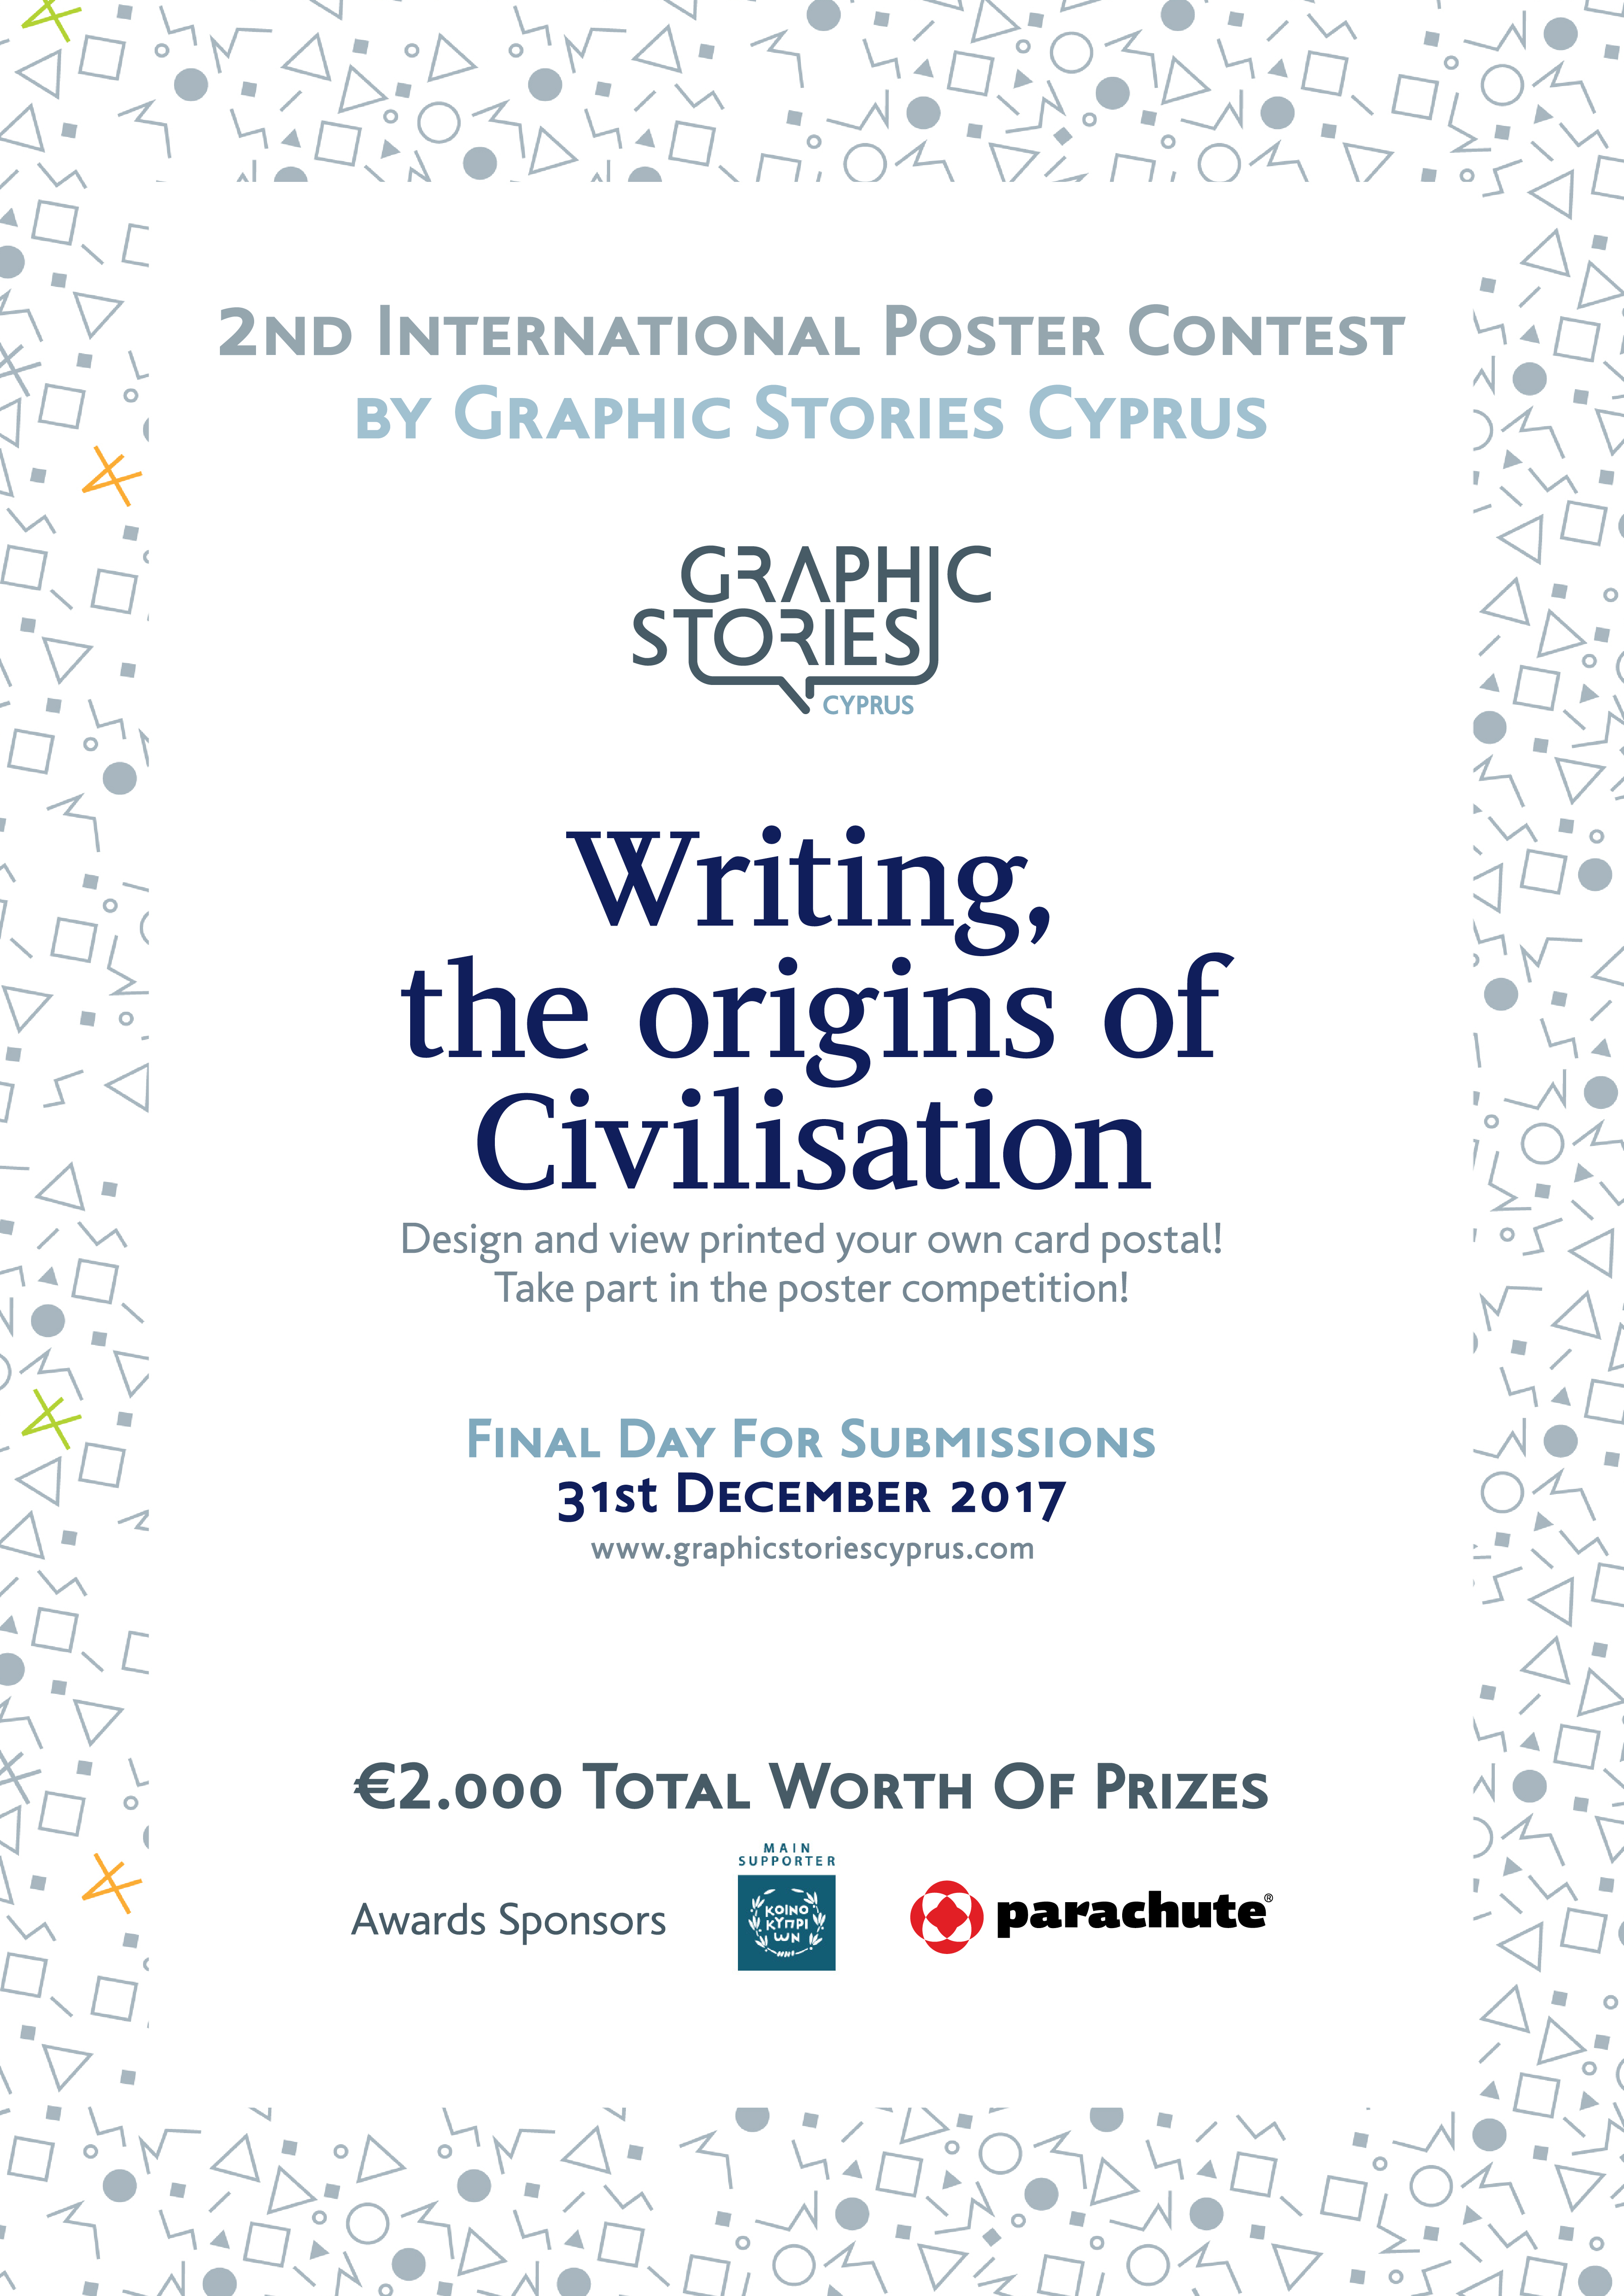 Graphic Stories Cyprus Poster Competition: Call for Submissions